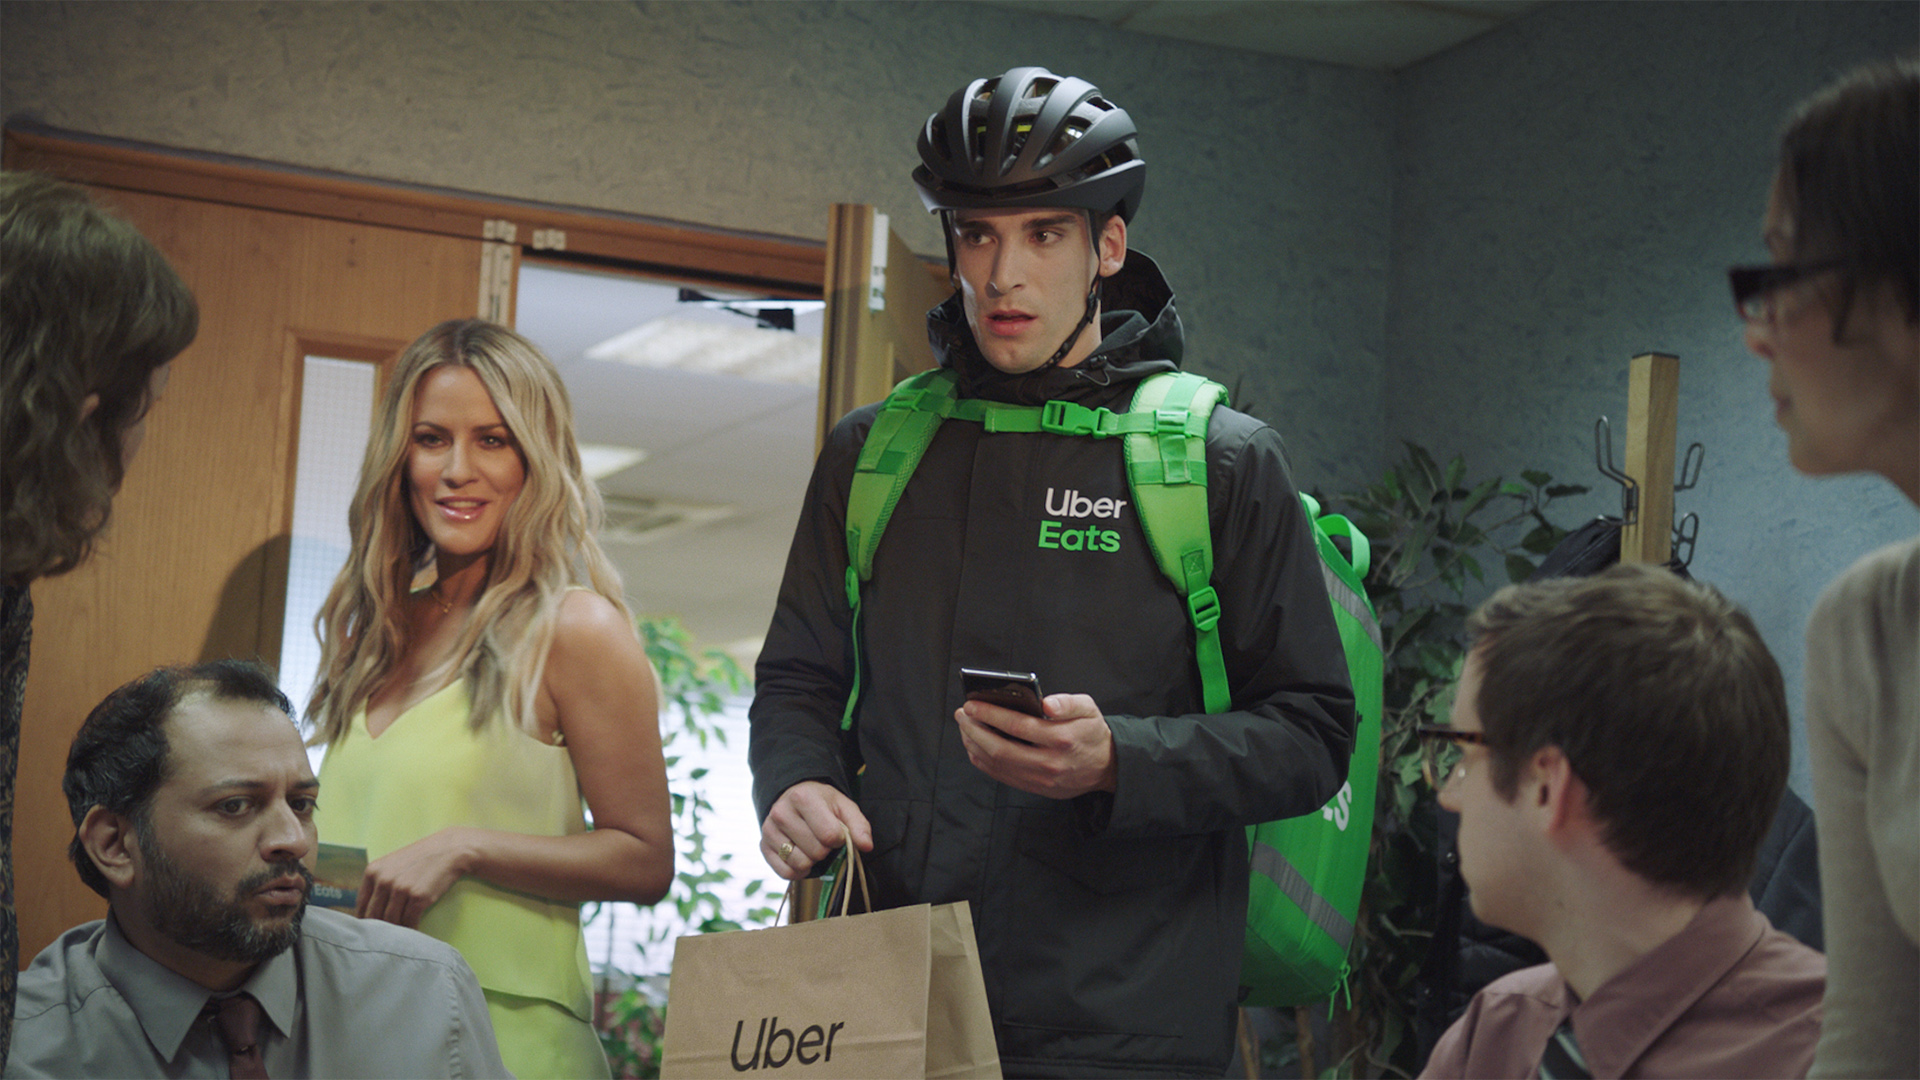 Uber Eats Hungryforloveisland Mother London